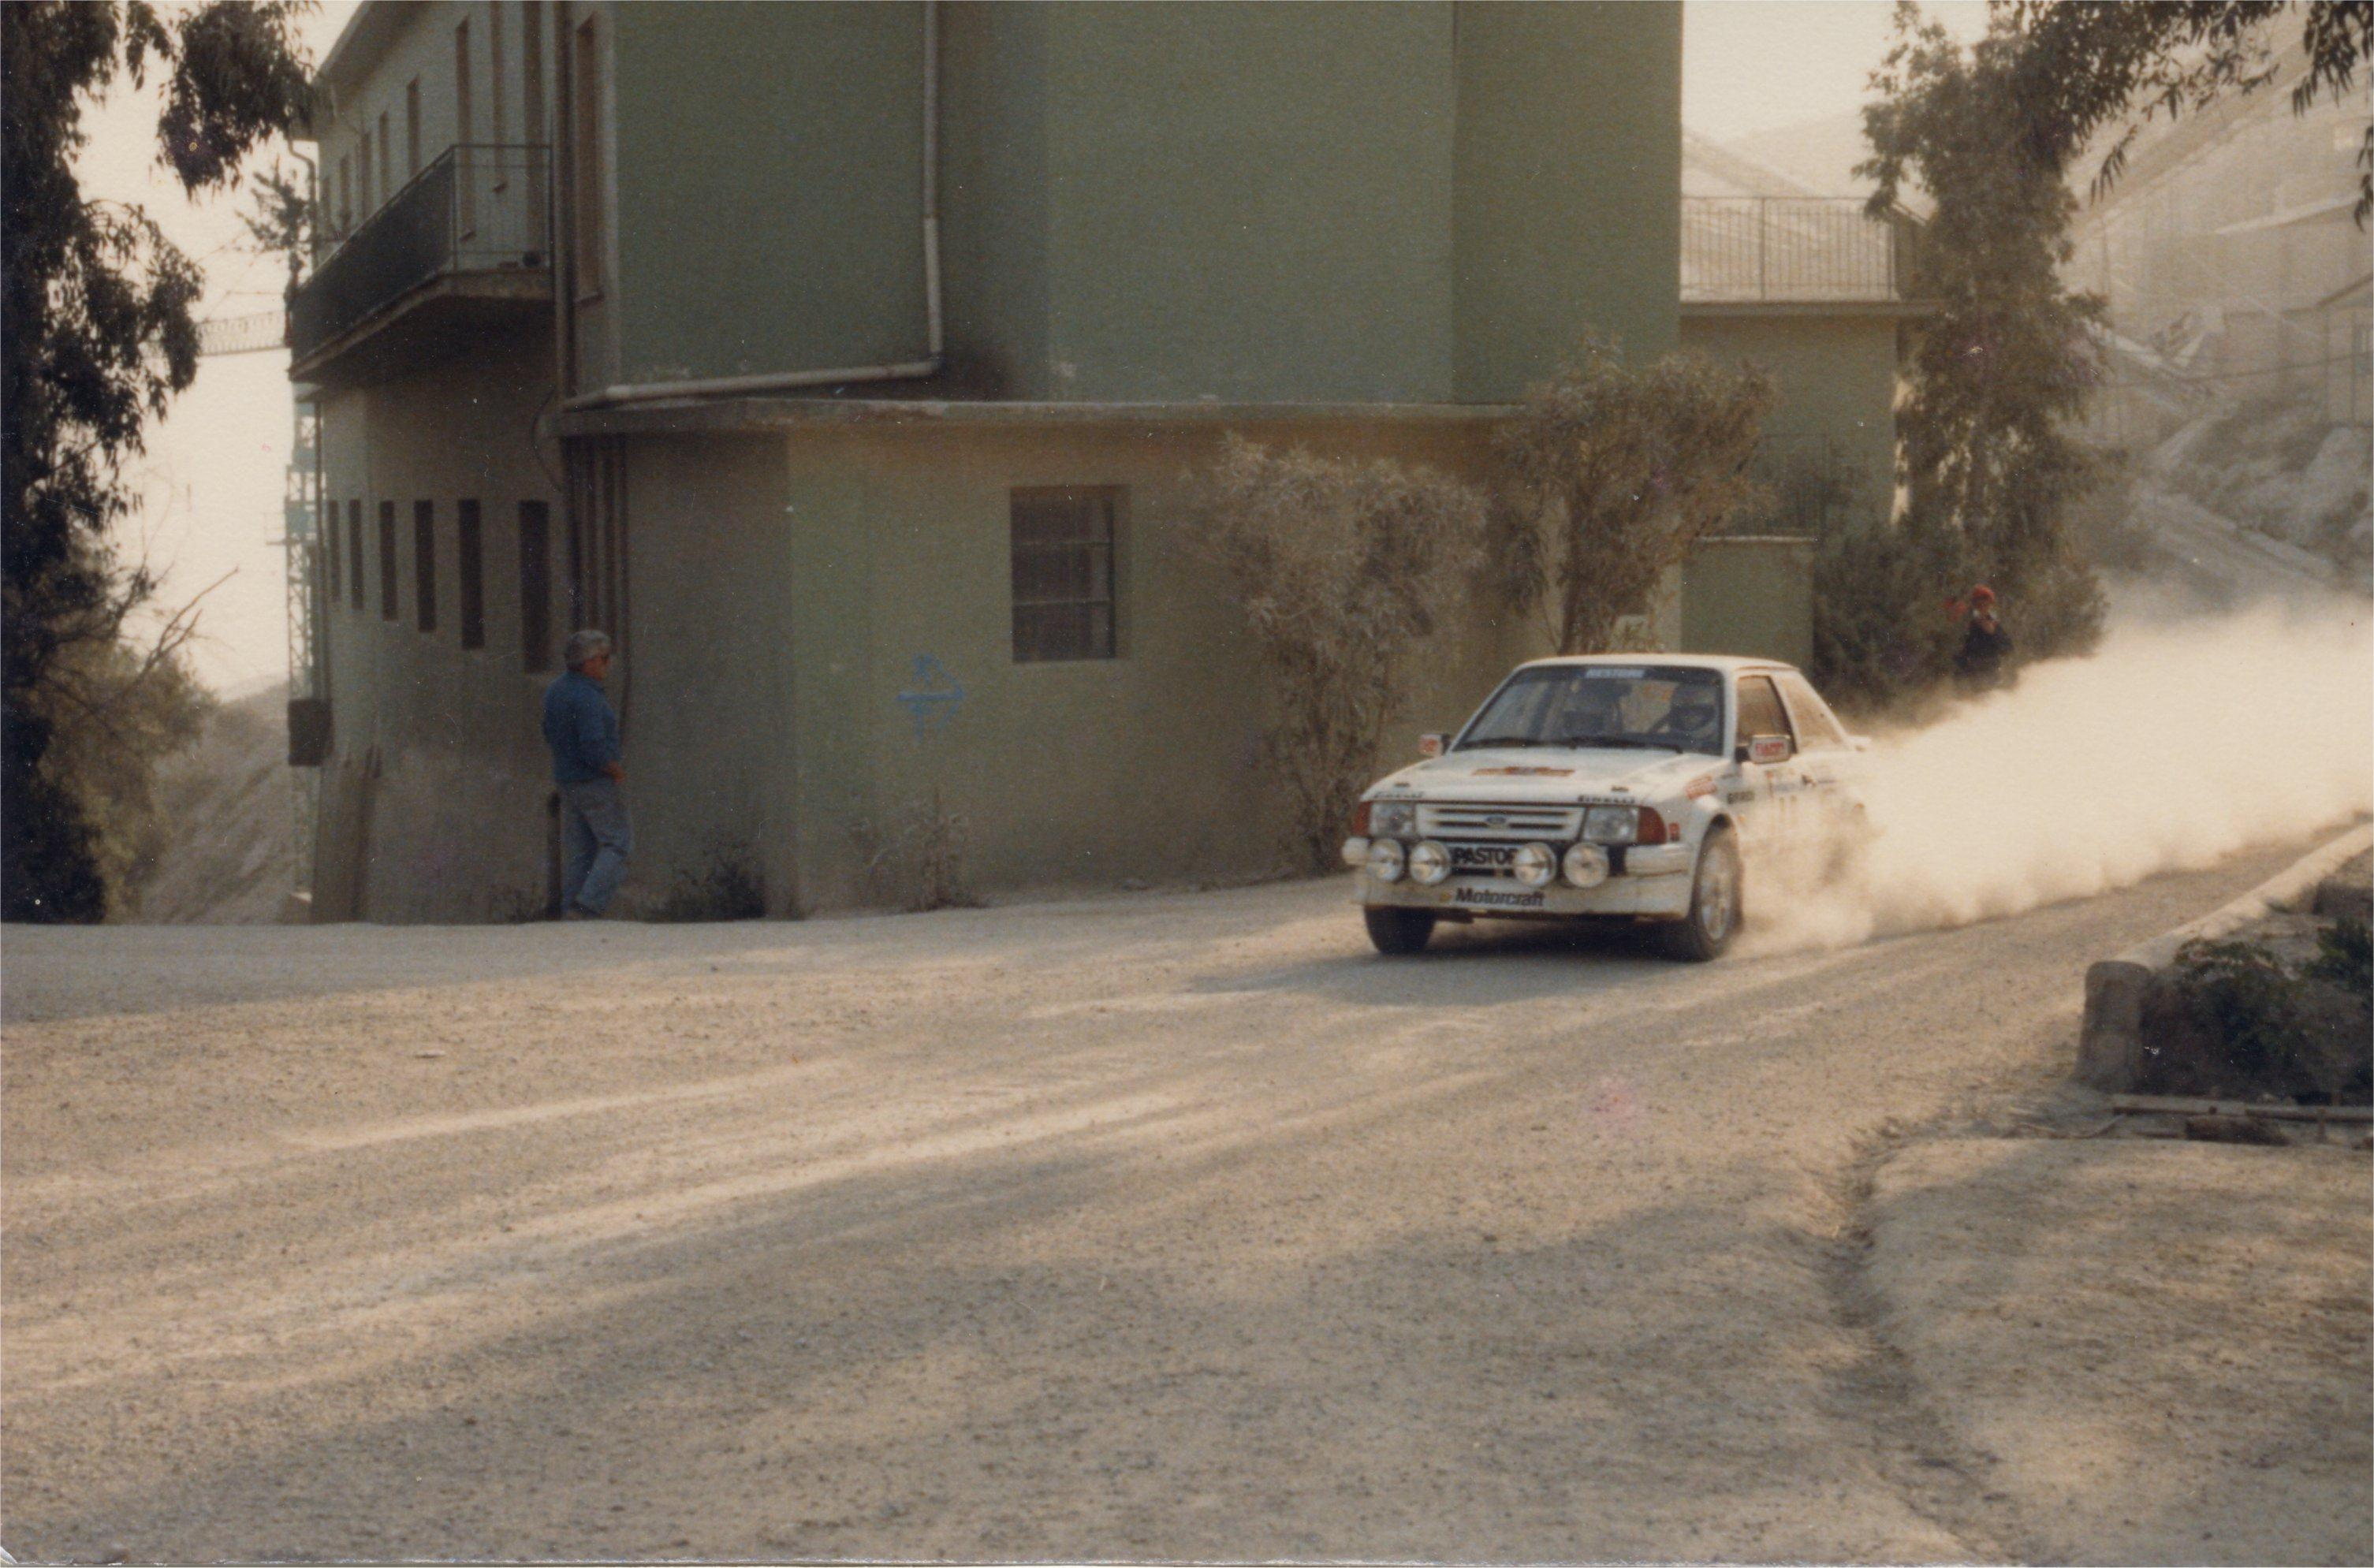 dust rally racing races HD Wallpaper